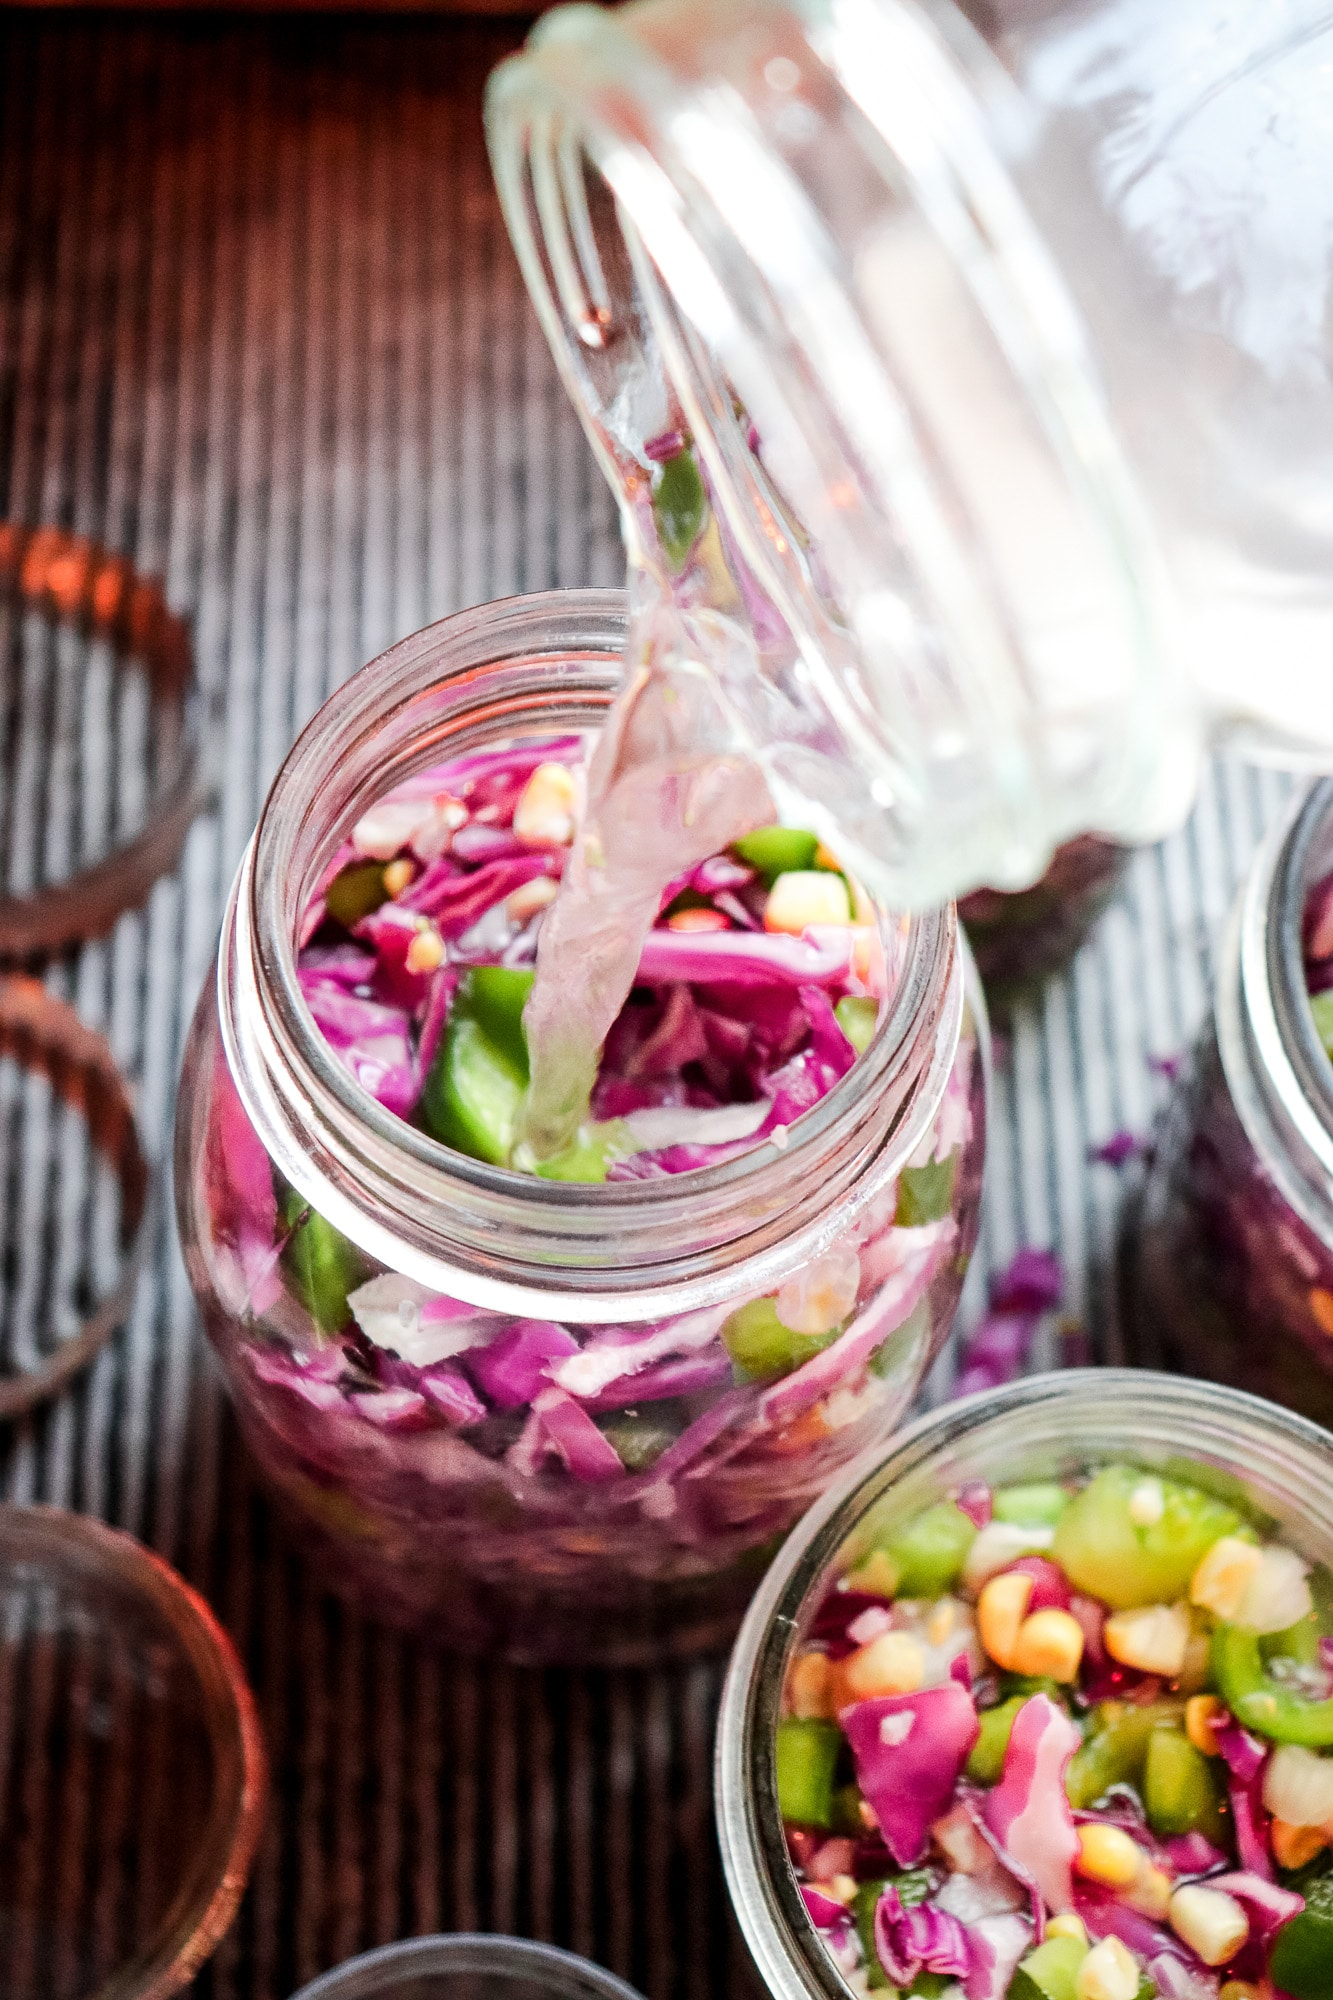 pouring brine water into jars to ferment vegetabls